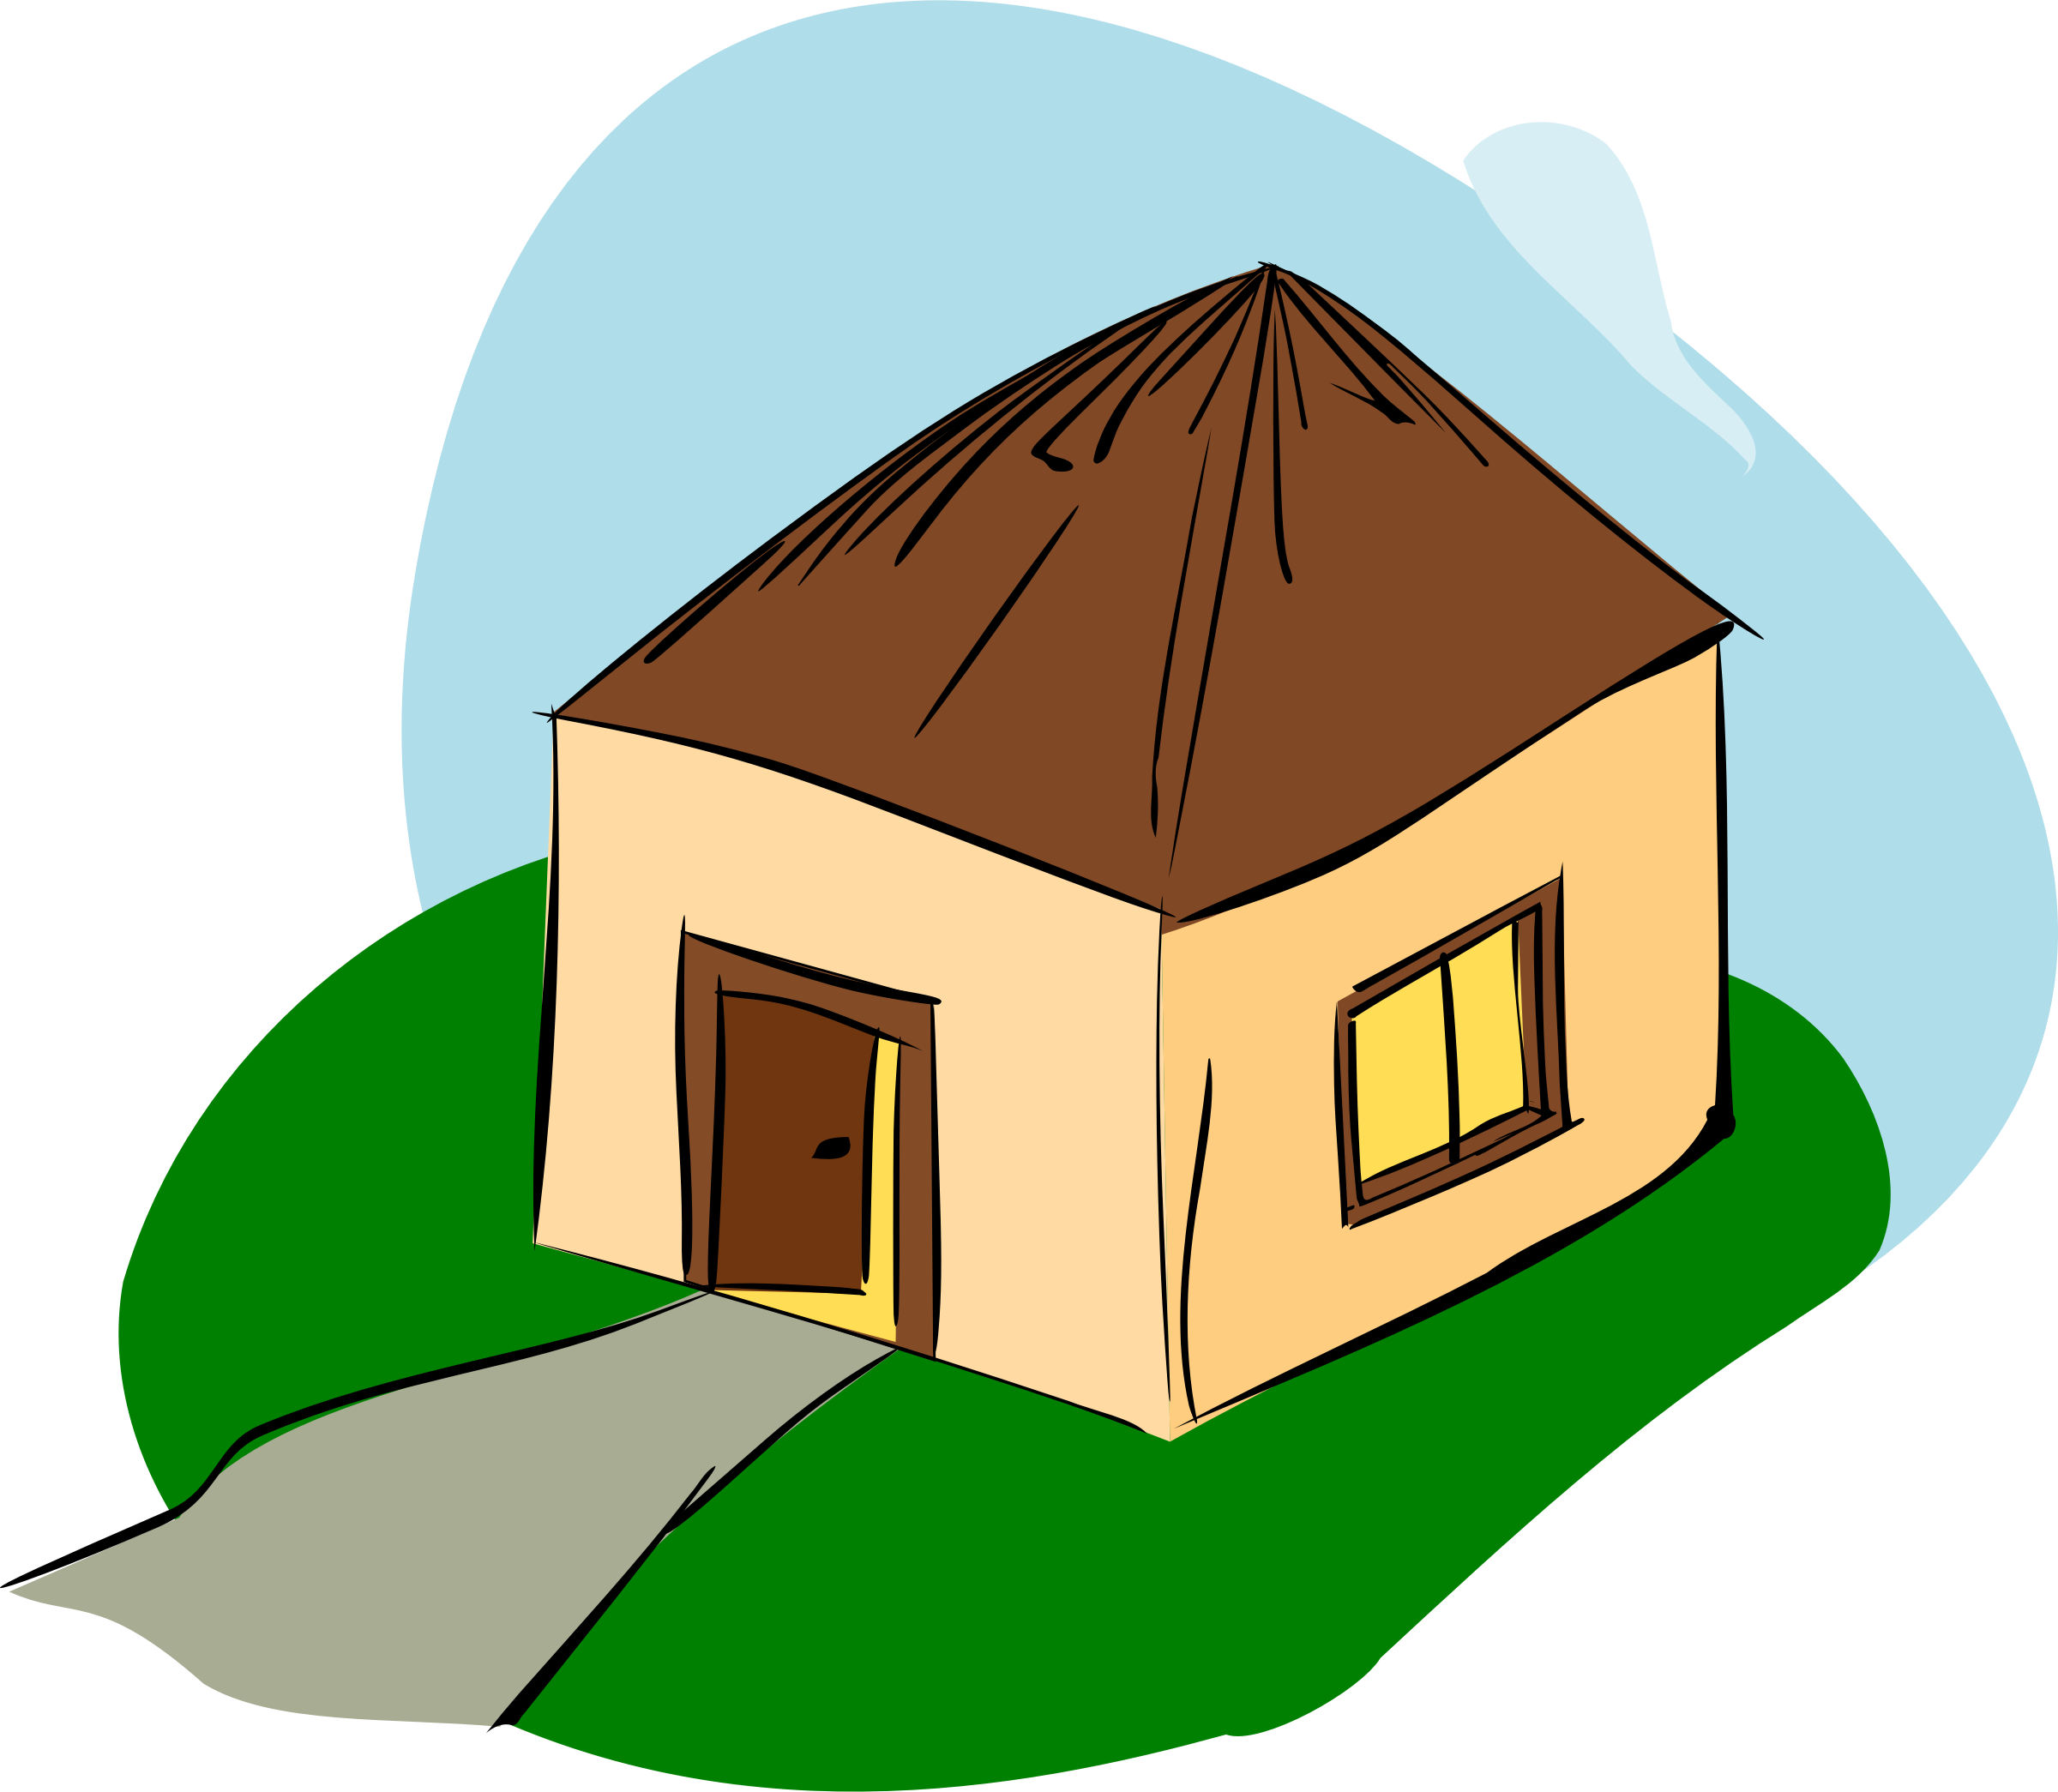 image transparent library Hut clipart desert house.  collection of png